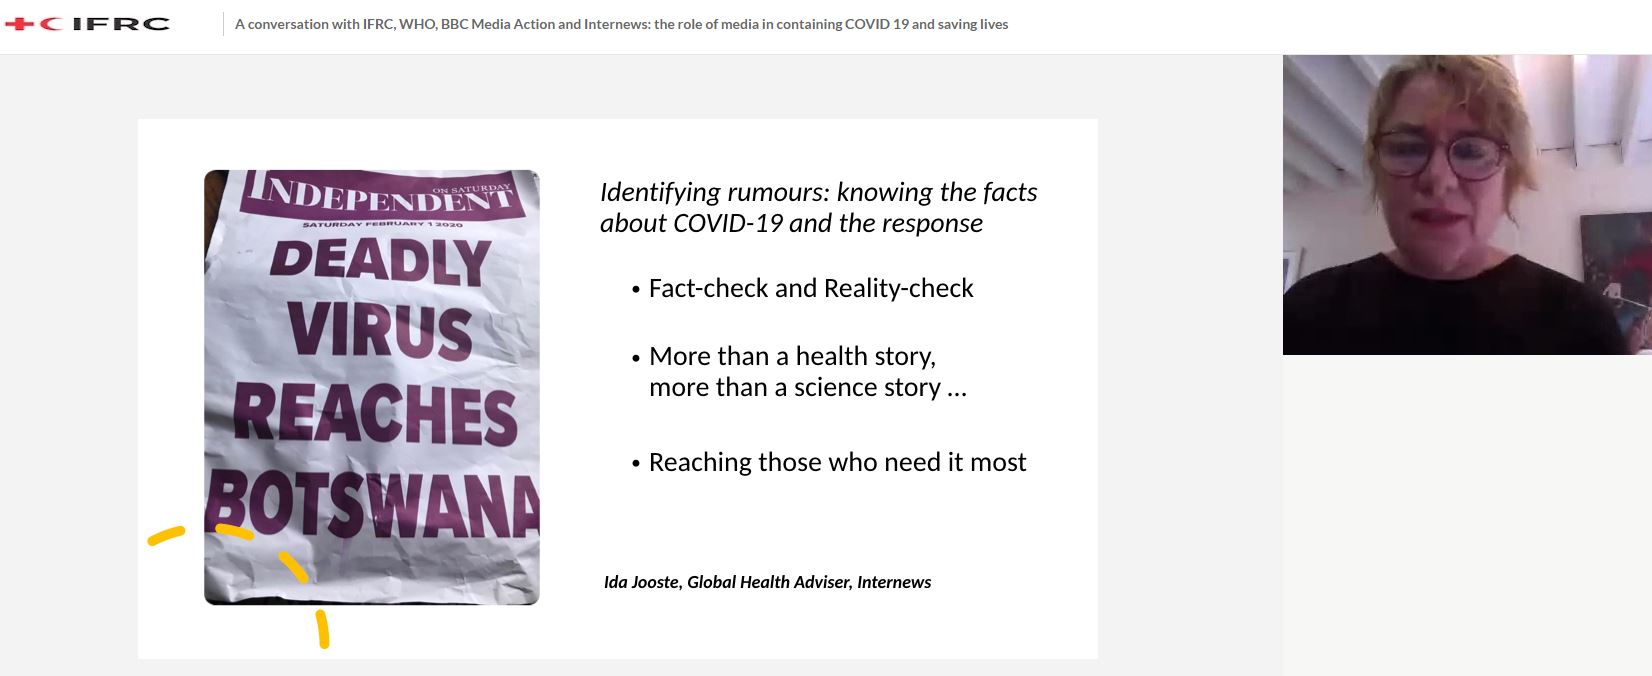 "Screenshot from webinar shows a headline from a newspaper: ""Deadly Virus Reaches Botswana"""